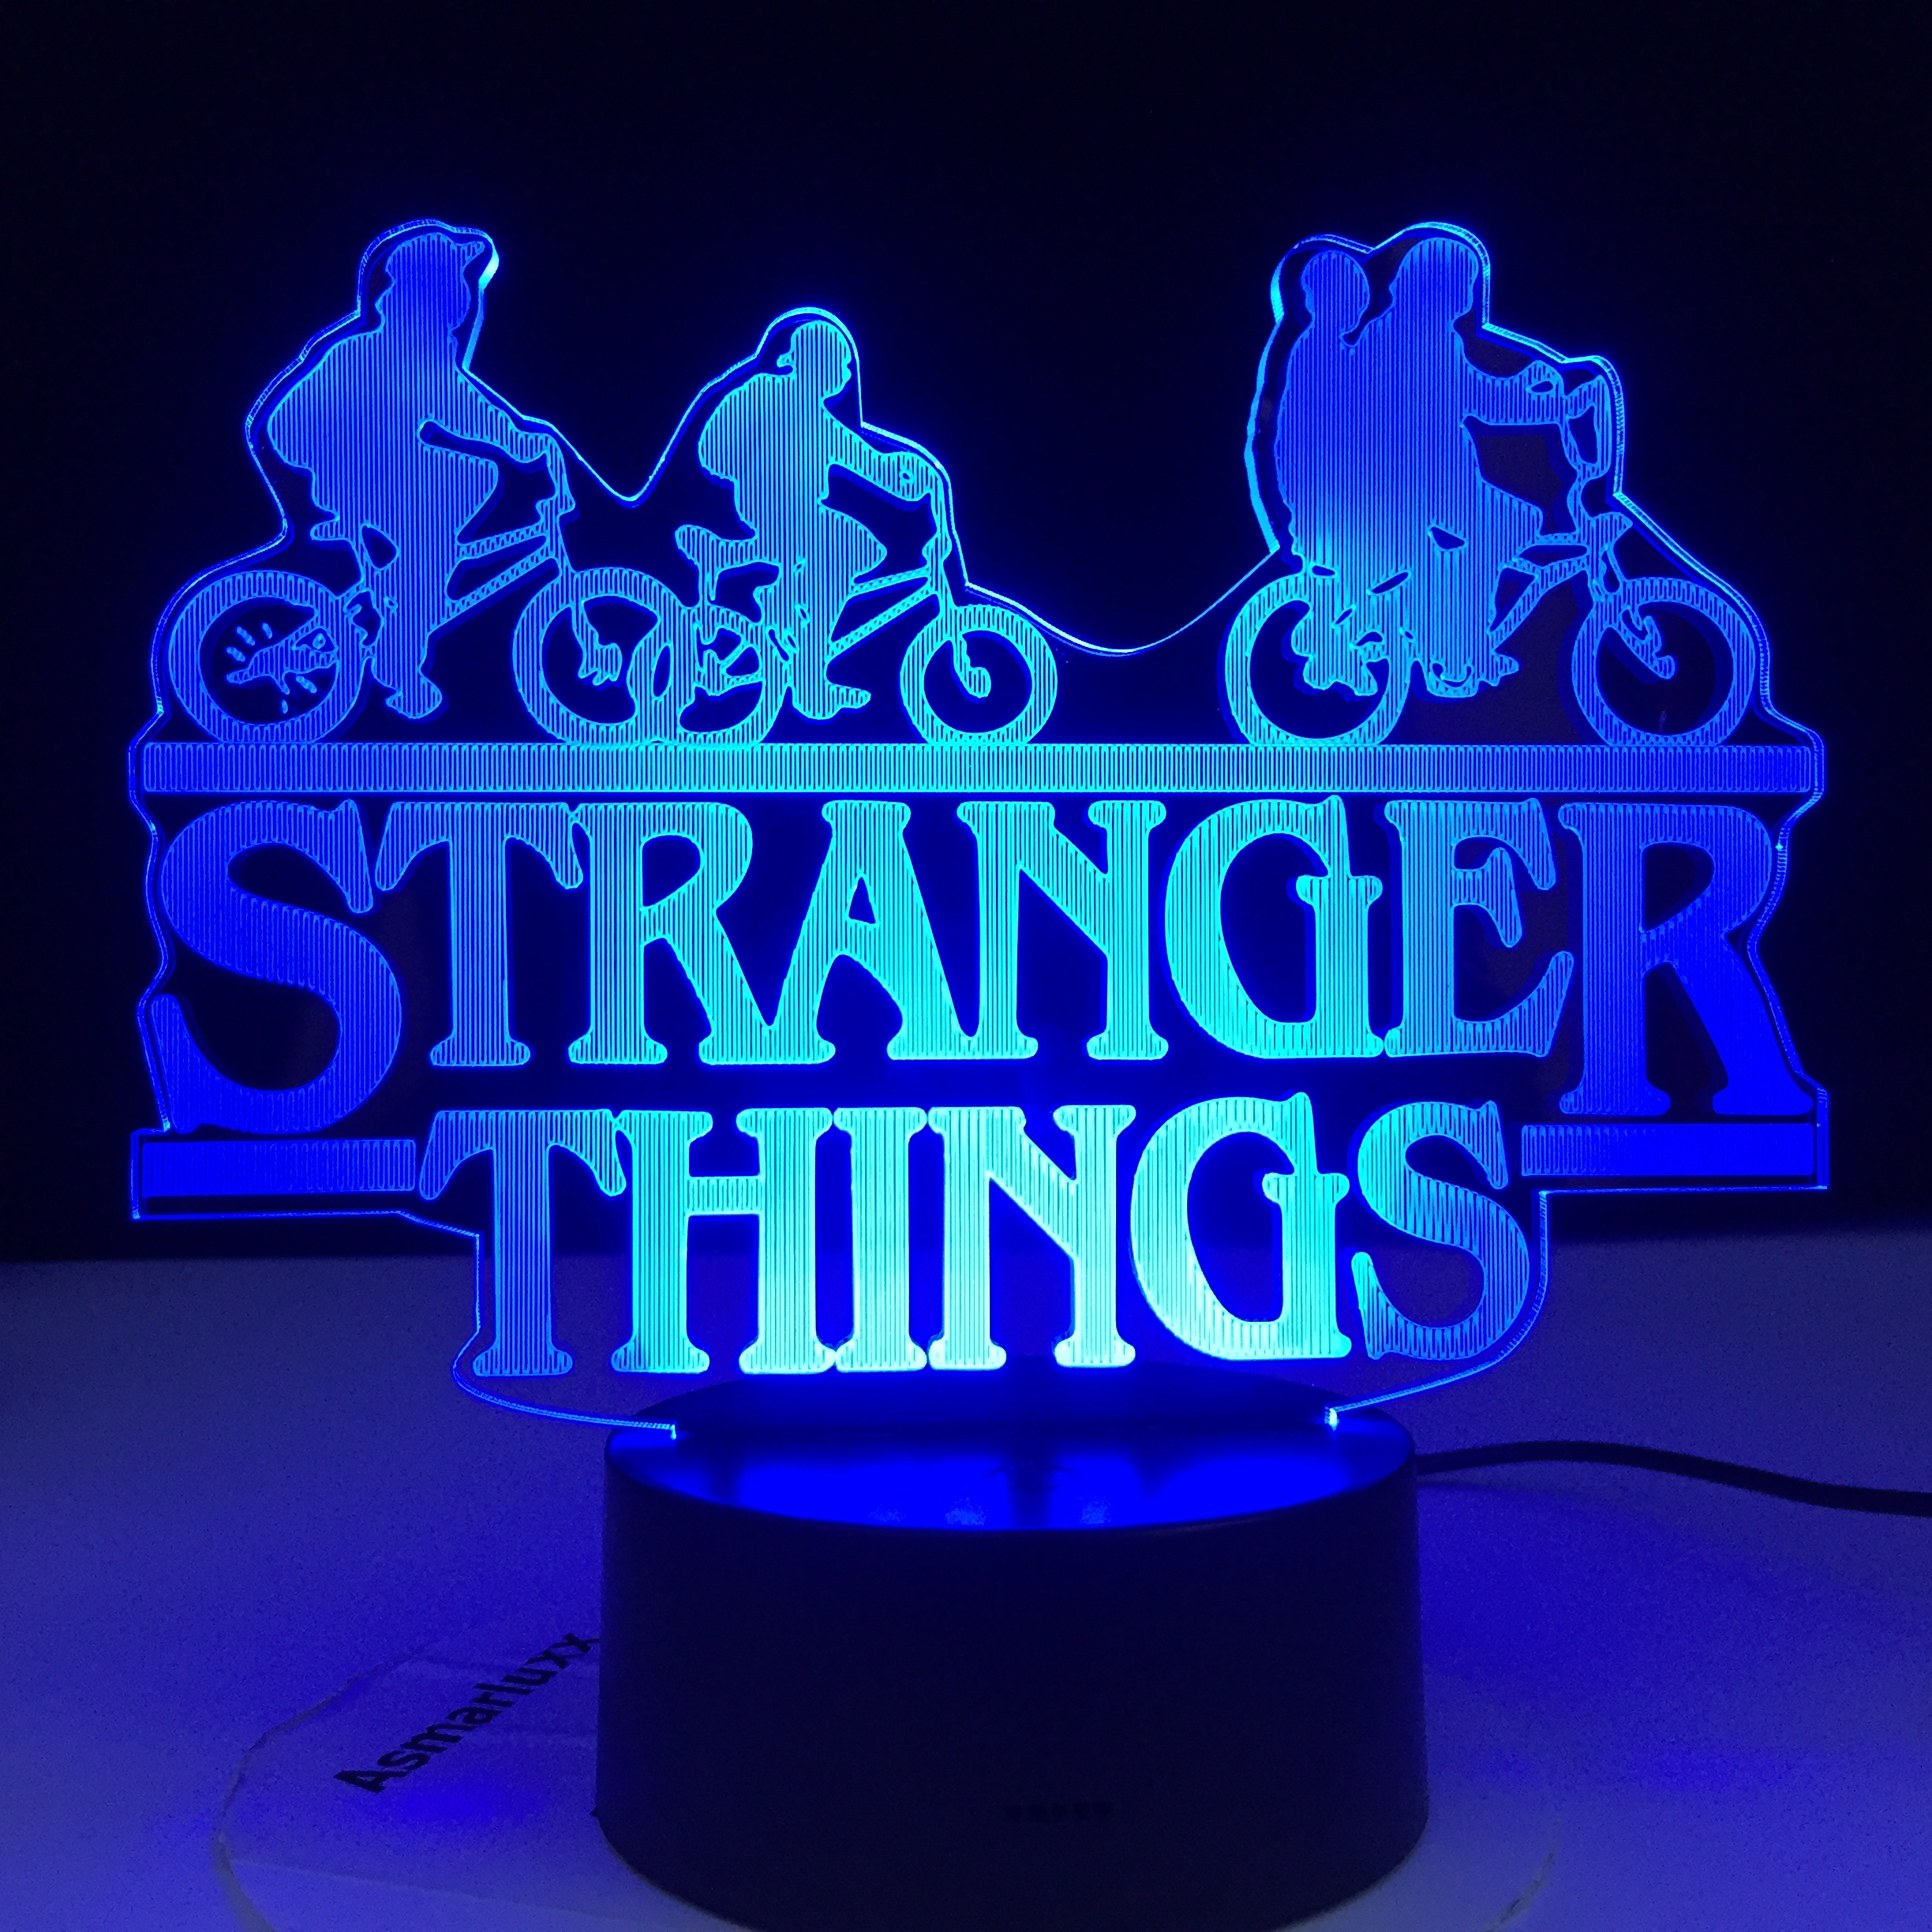 Best Sale 4c5e2 Stranger Things American Web Tv Series Led Night Light 7 Colors Changing Touch Sensor Bedroom Nightlight Table Lamp Best Gift Cicig Co